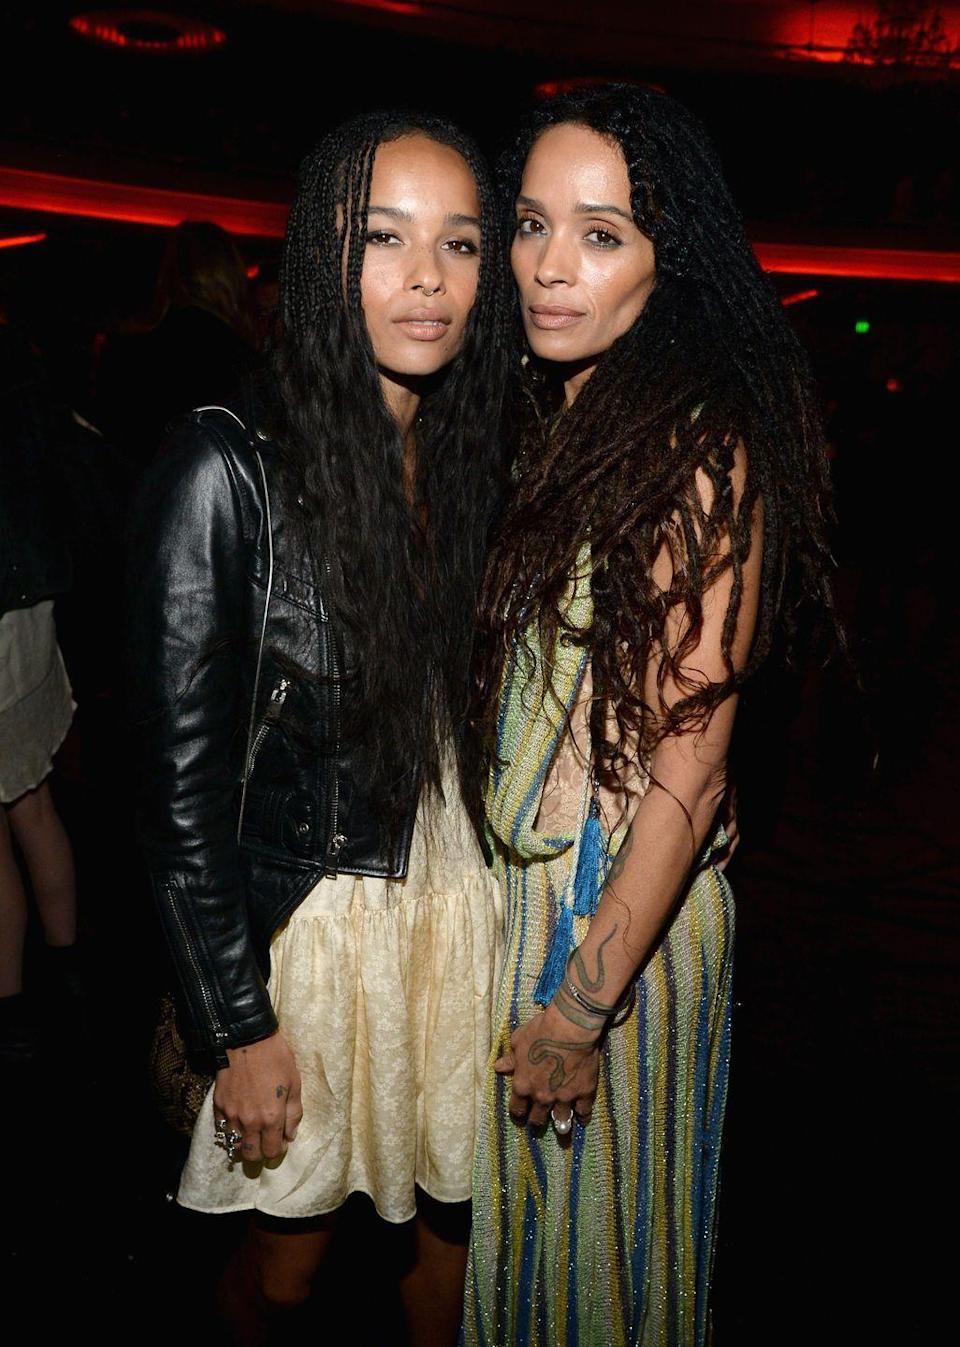 """<p>Age is nothing but a number. Lisa Bonet, 52, and Zoë Kravitz, 31, look more like twins than mother and daughter. Kravitz even re-created her mom's nude <em>Rolling Stone </em>cover <a href=""""https://www.harpersbazaar.com/celebrity/latest/a24400093/zoe-kravitz-recreates-lisa-bonet-nude-rolling-stone-photo/"""" rel=""""nofollow noopener"""" target=""""_blank"""" data-ylk=""""slk:for Halloween 2018"""" class=""""link rapid-noclick-resp"""">for Halloween 2018</a>, and the resemblance is uncanny. </p>"""